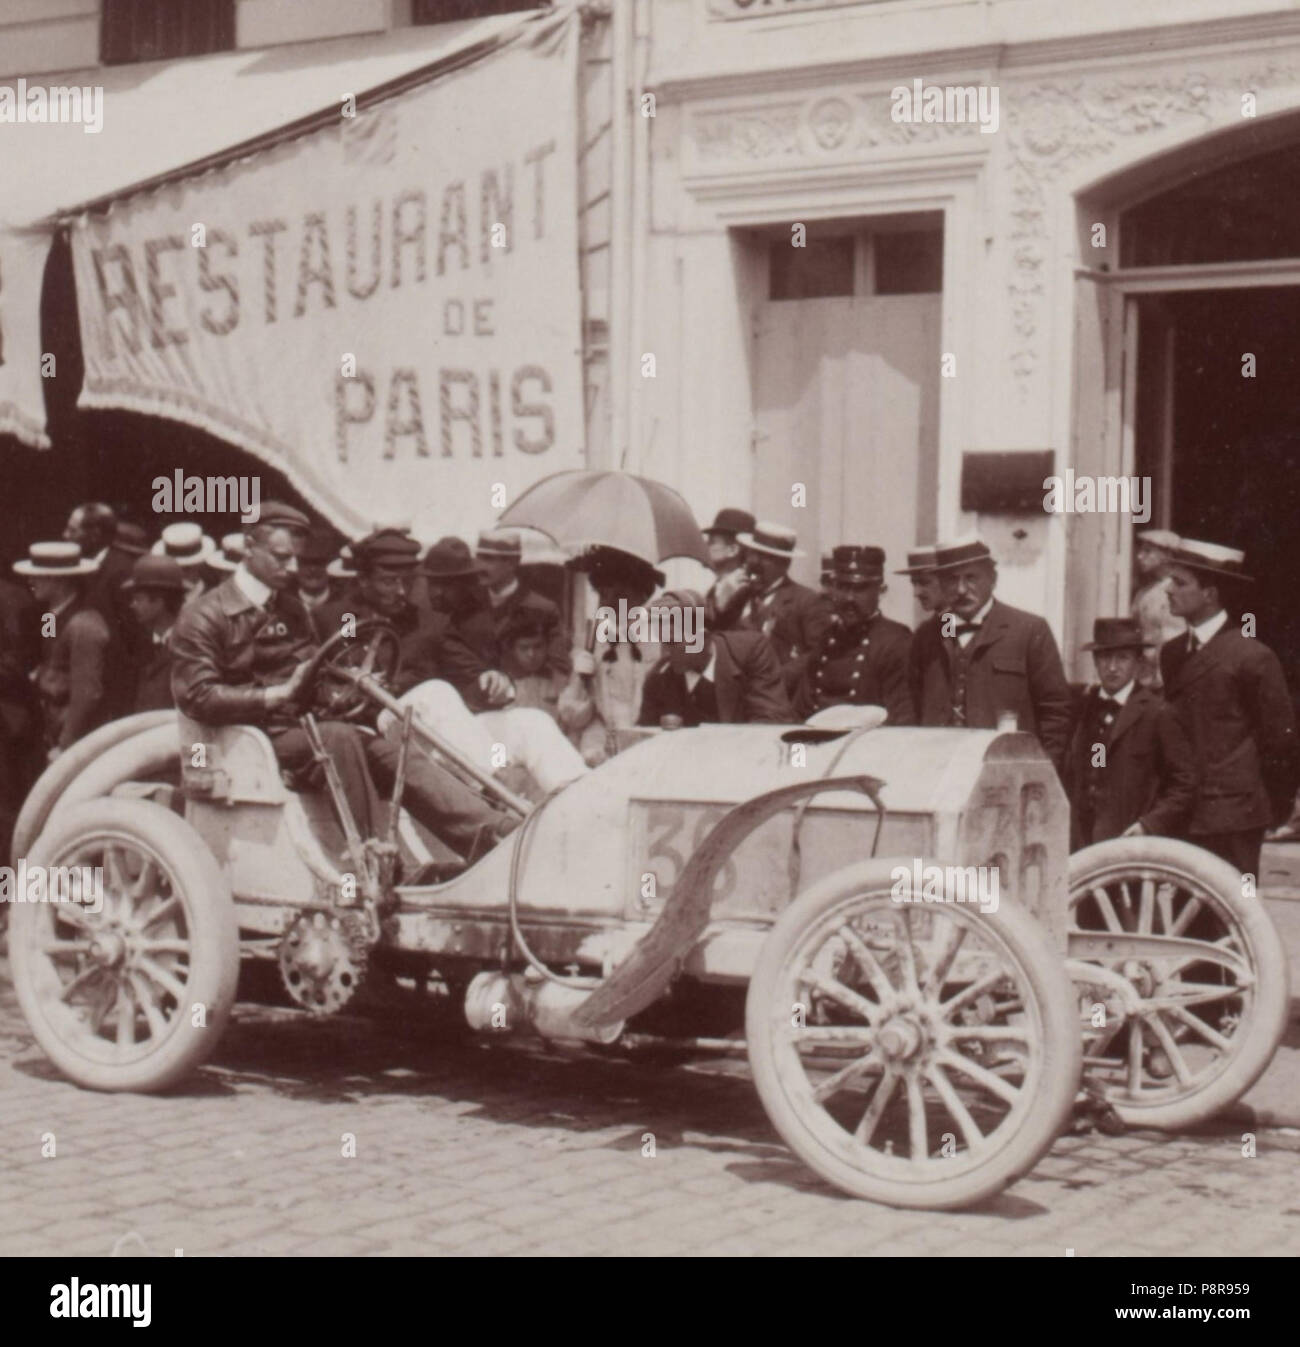 [Collection Jules Beau. Photographie sportive] : T. 21. Année 1903 / Jules Beau : F. 43v. [Paris - Bordeaux]; 444 Otto Hieronimus au Paris-Madrid 1903 (Mercedes numéro 36) Stock Photo